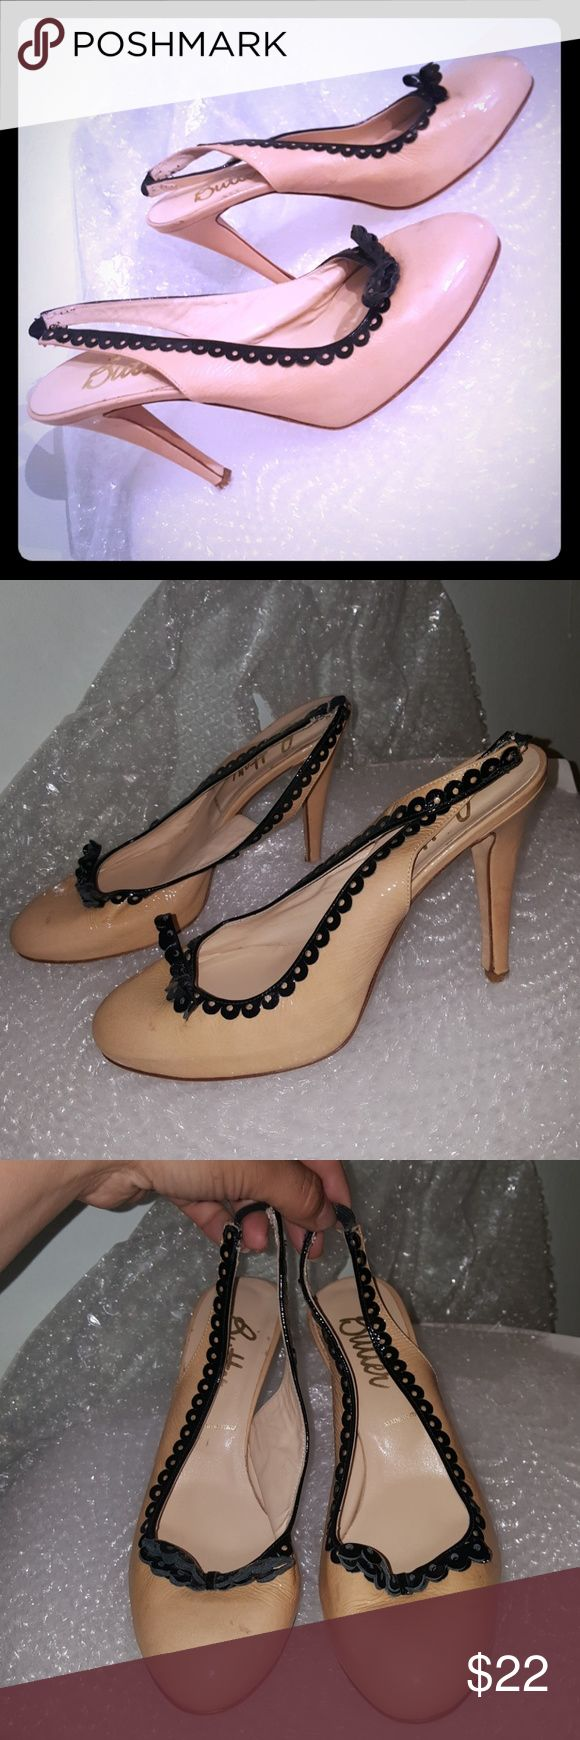 """Butter heels size 10 Lavorazione Artigiana 4.5"""" heels, 3/4"""" hidden platform. Leather sole. Made in Italy. Patent leather upper & trim. Some staining to the leather. Made in Italy. Butter Shoes Platforms"""